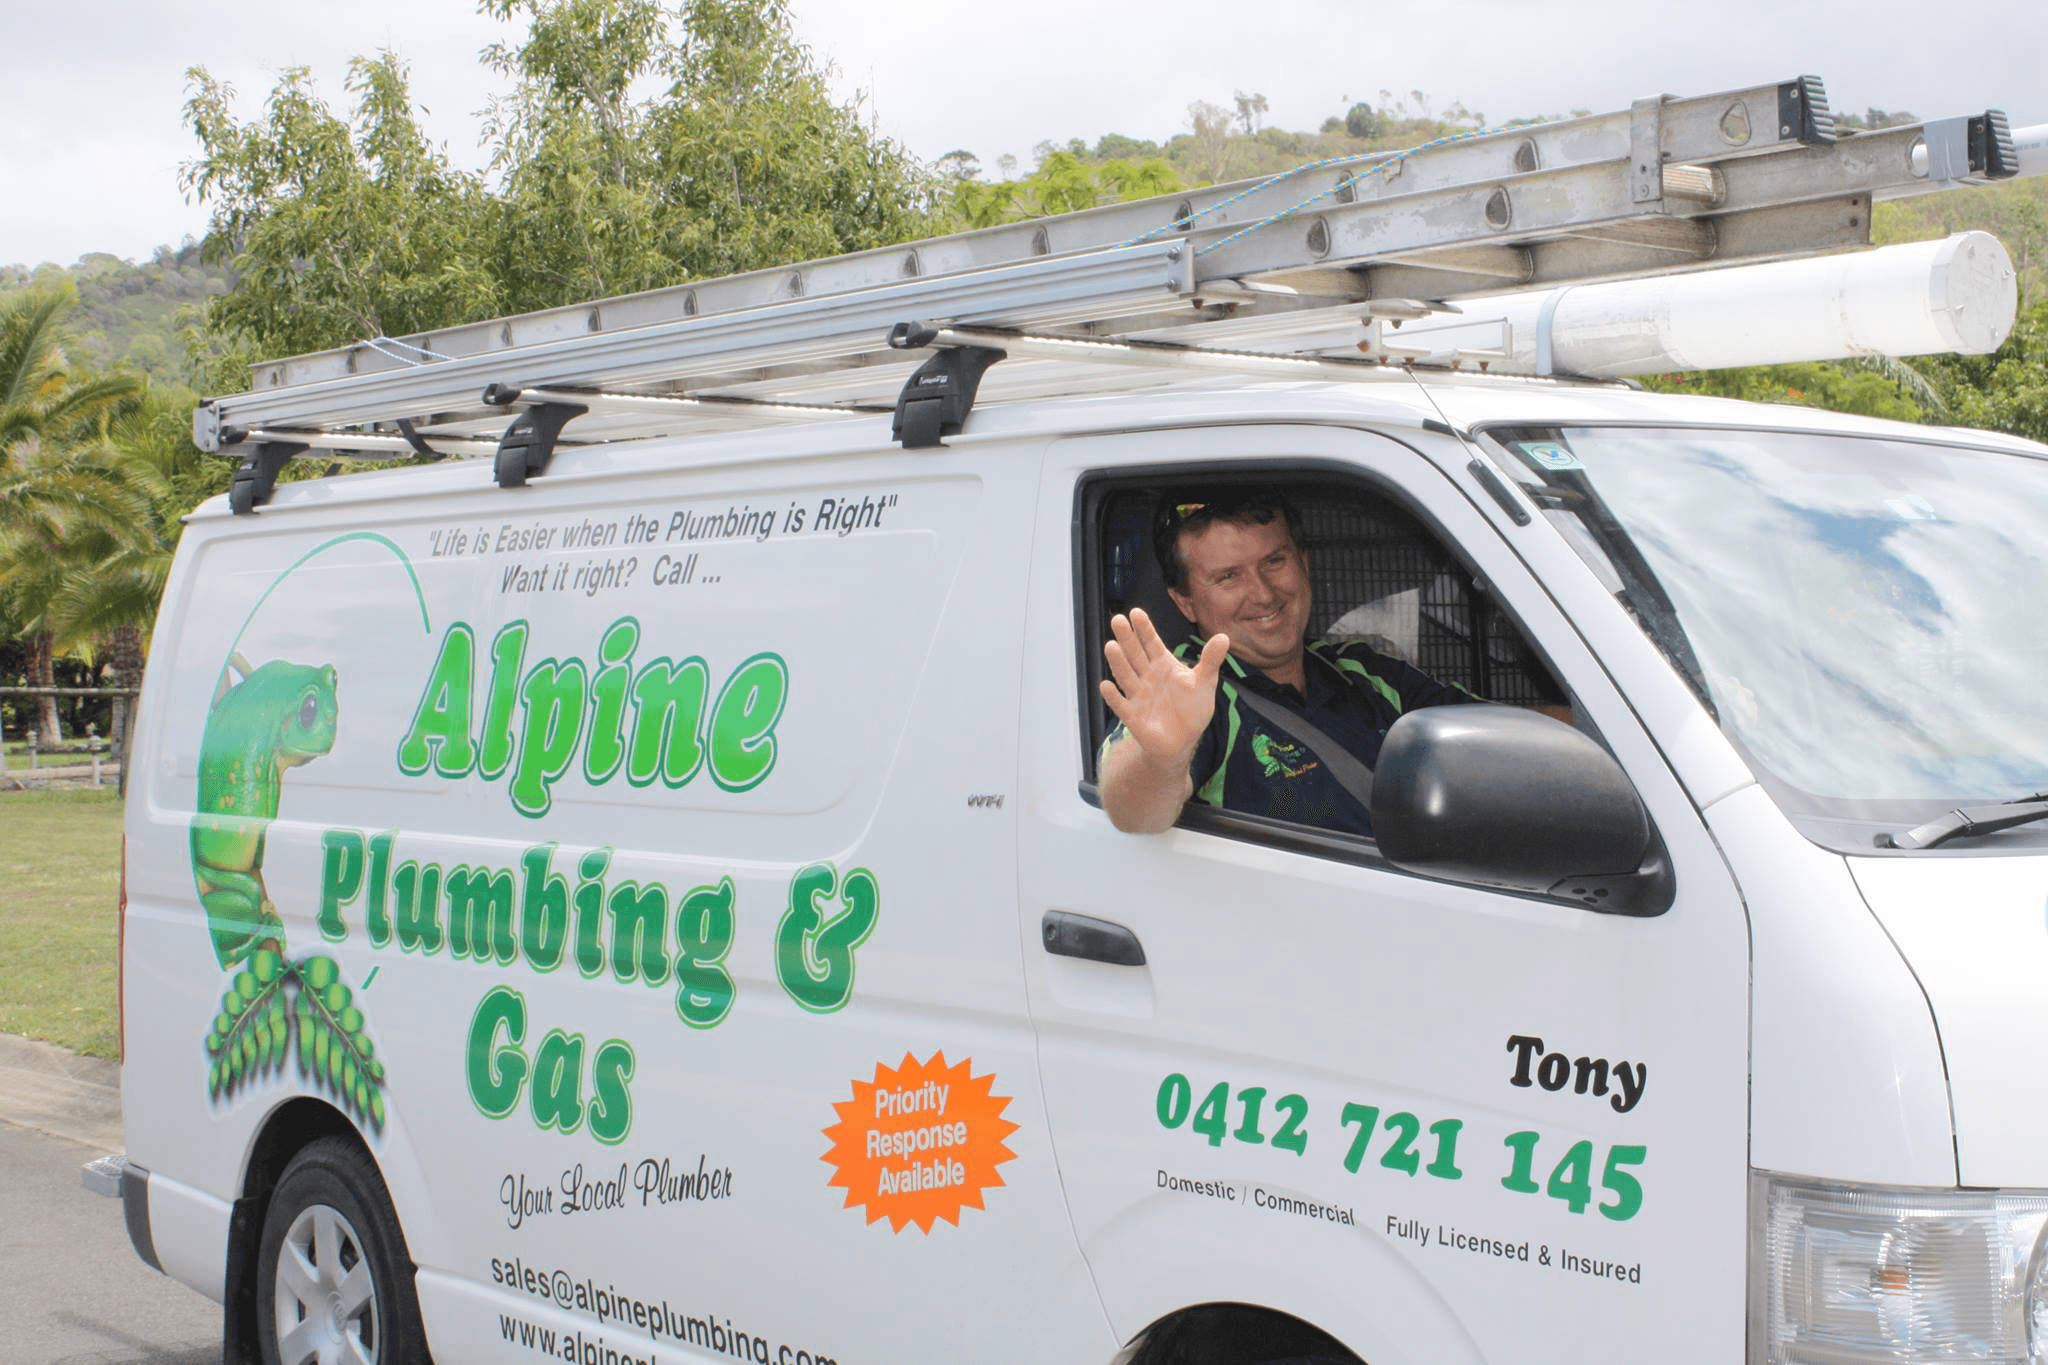 alpine-plumbing-and-gasfitting-services-tony-small